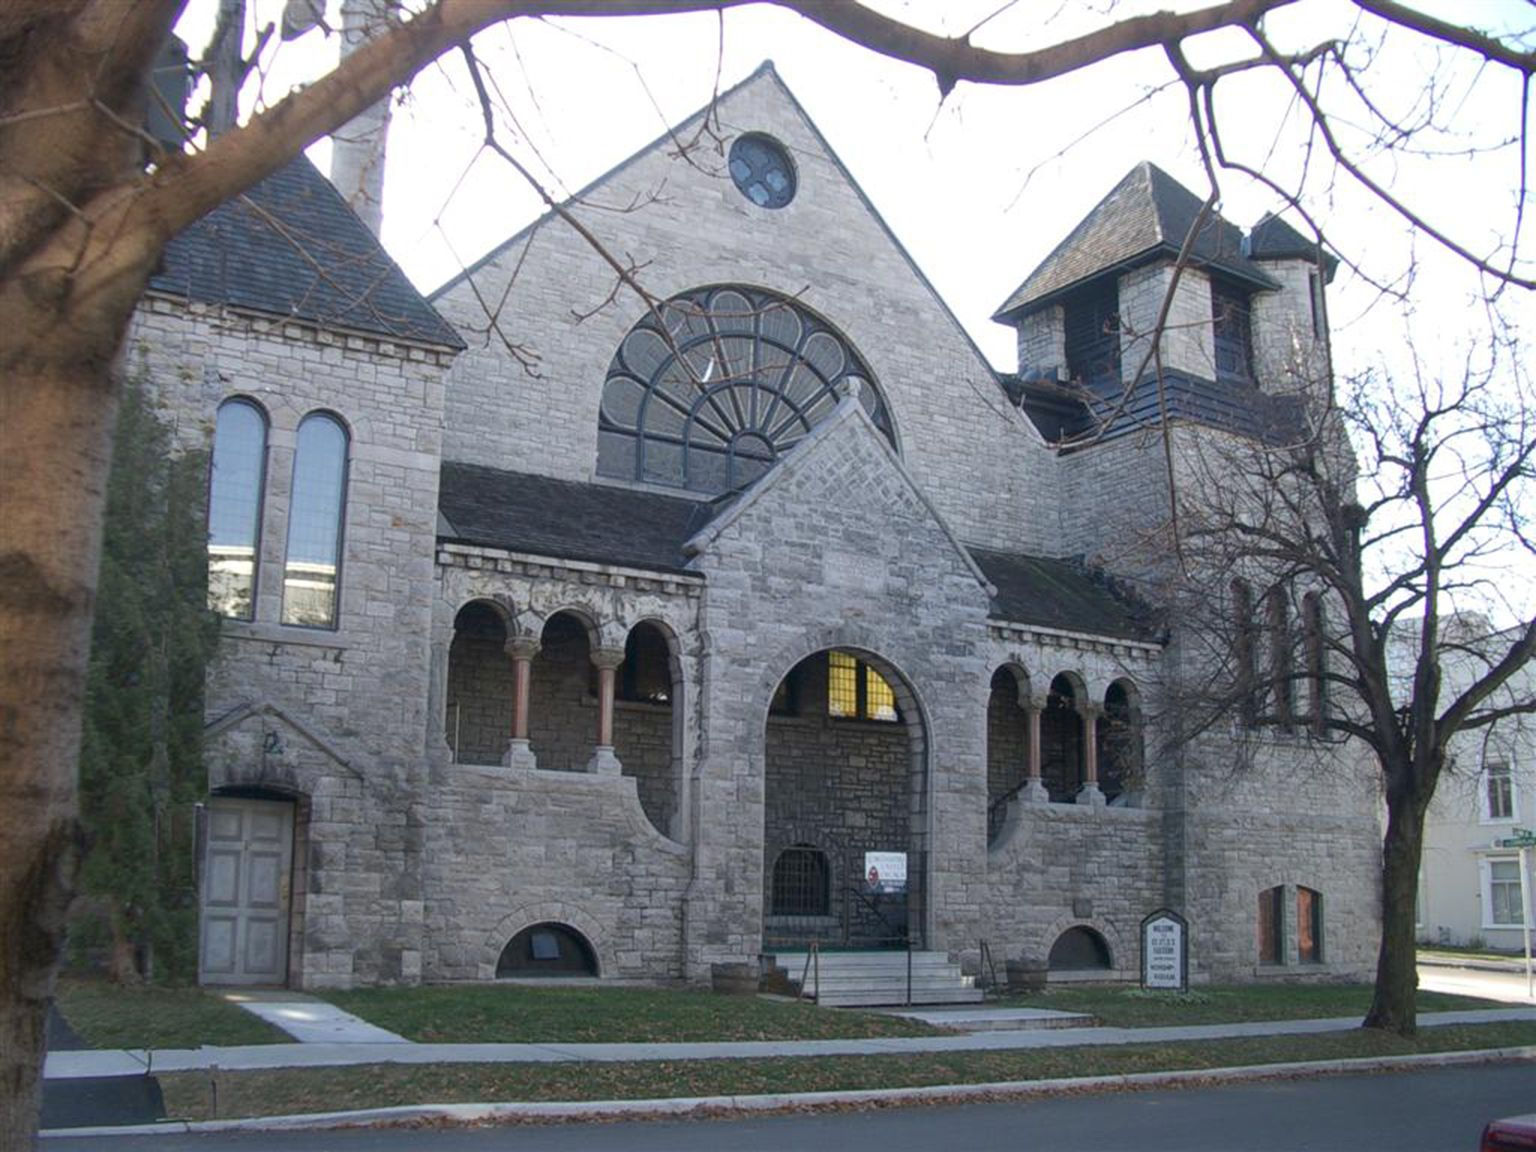 Exterior view of a church built in Romanesque Revival style between 1888 and 1889,